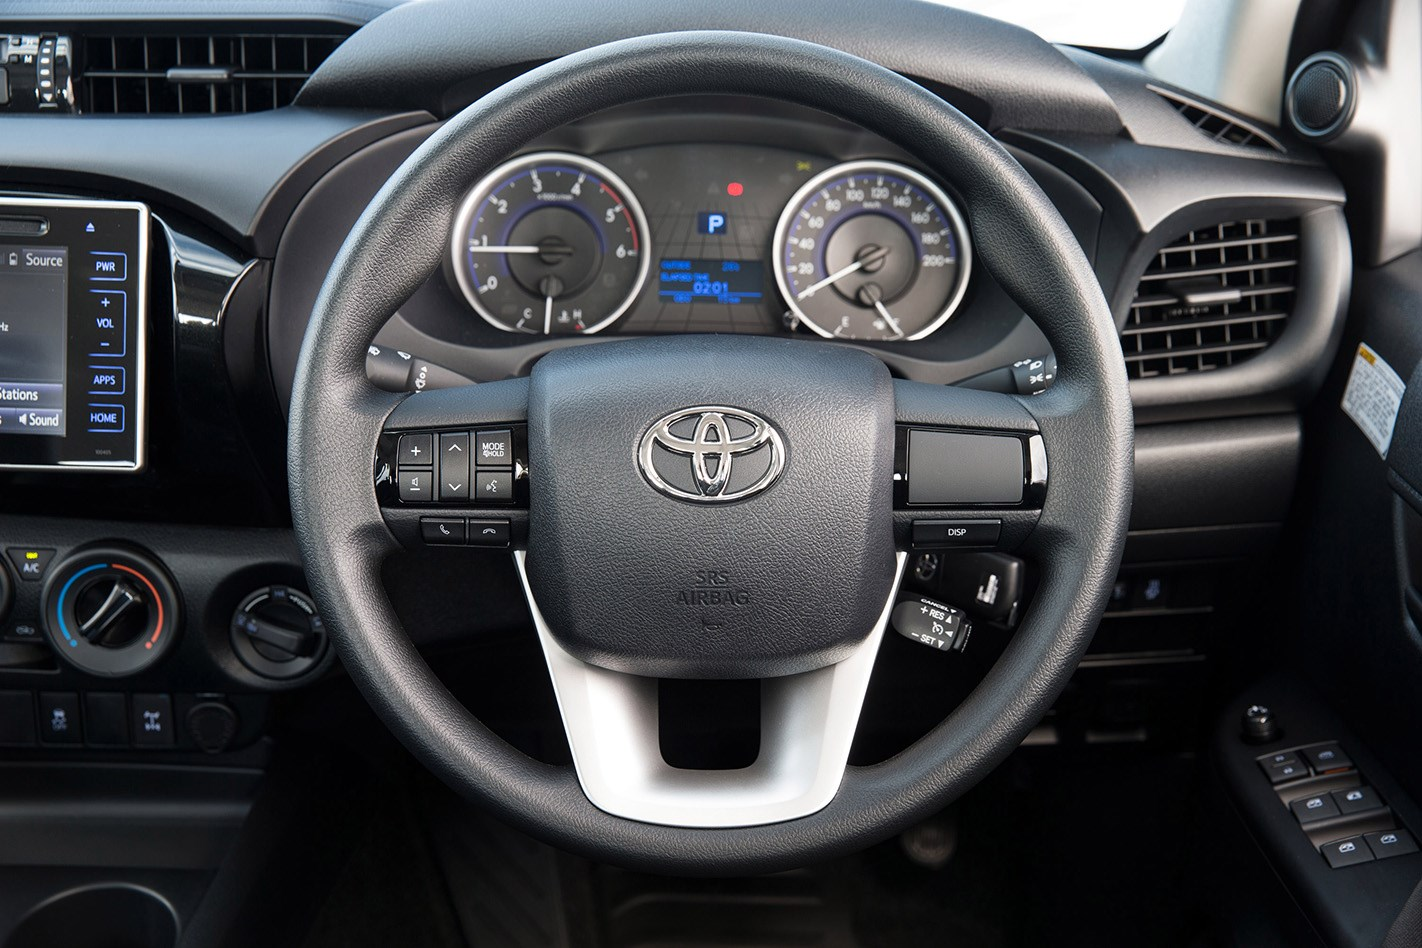 2016 toyota hilux sr 4x4 cab chassis review caradvice - 2017 Toyota Hilux Sr Hi Rider 2 8l 4cyl Diesel Turbocharged Manual Ute